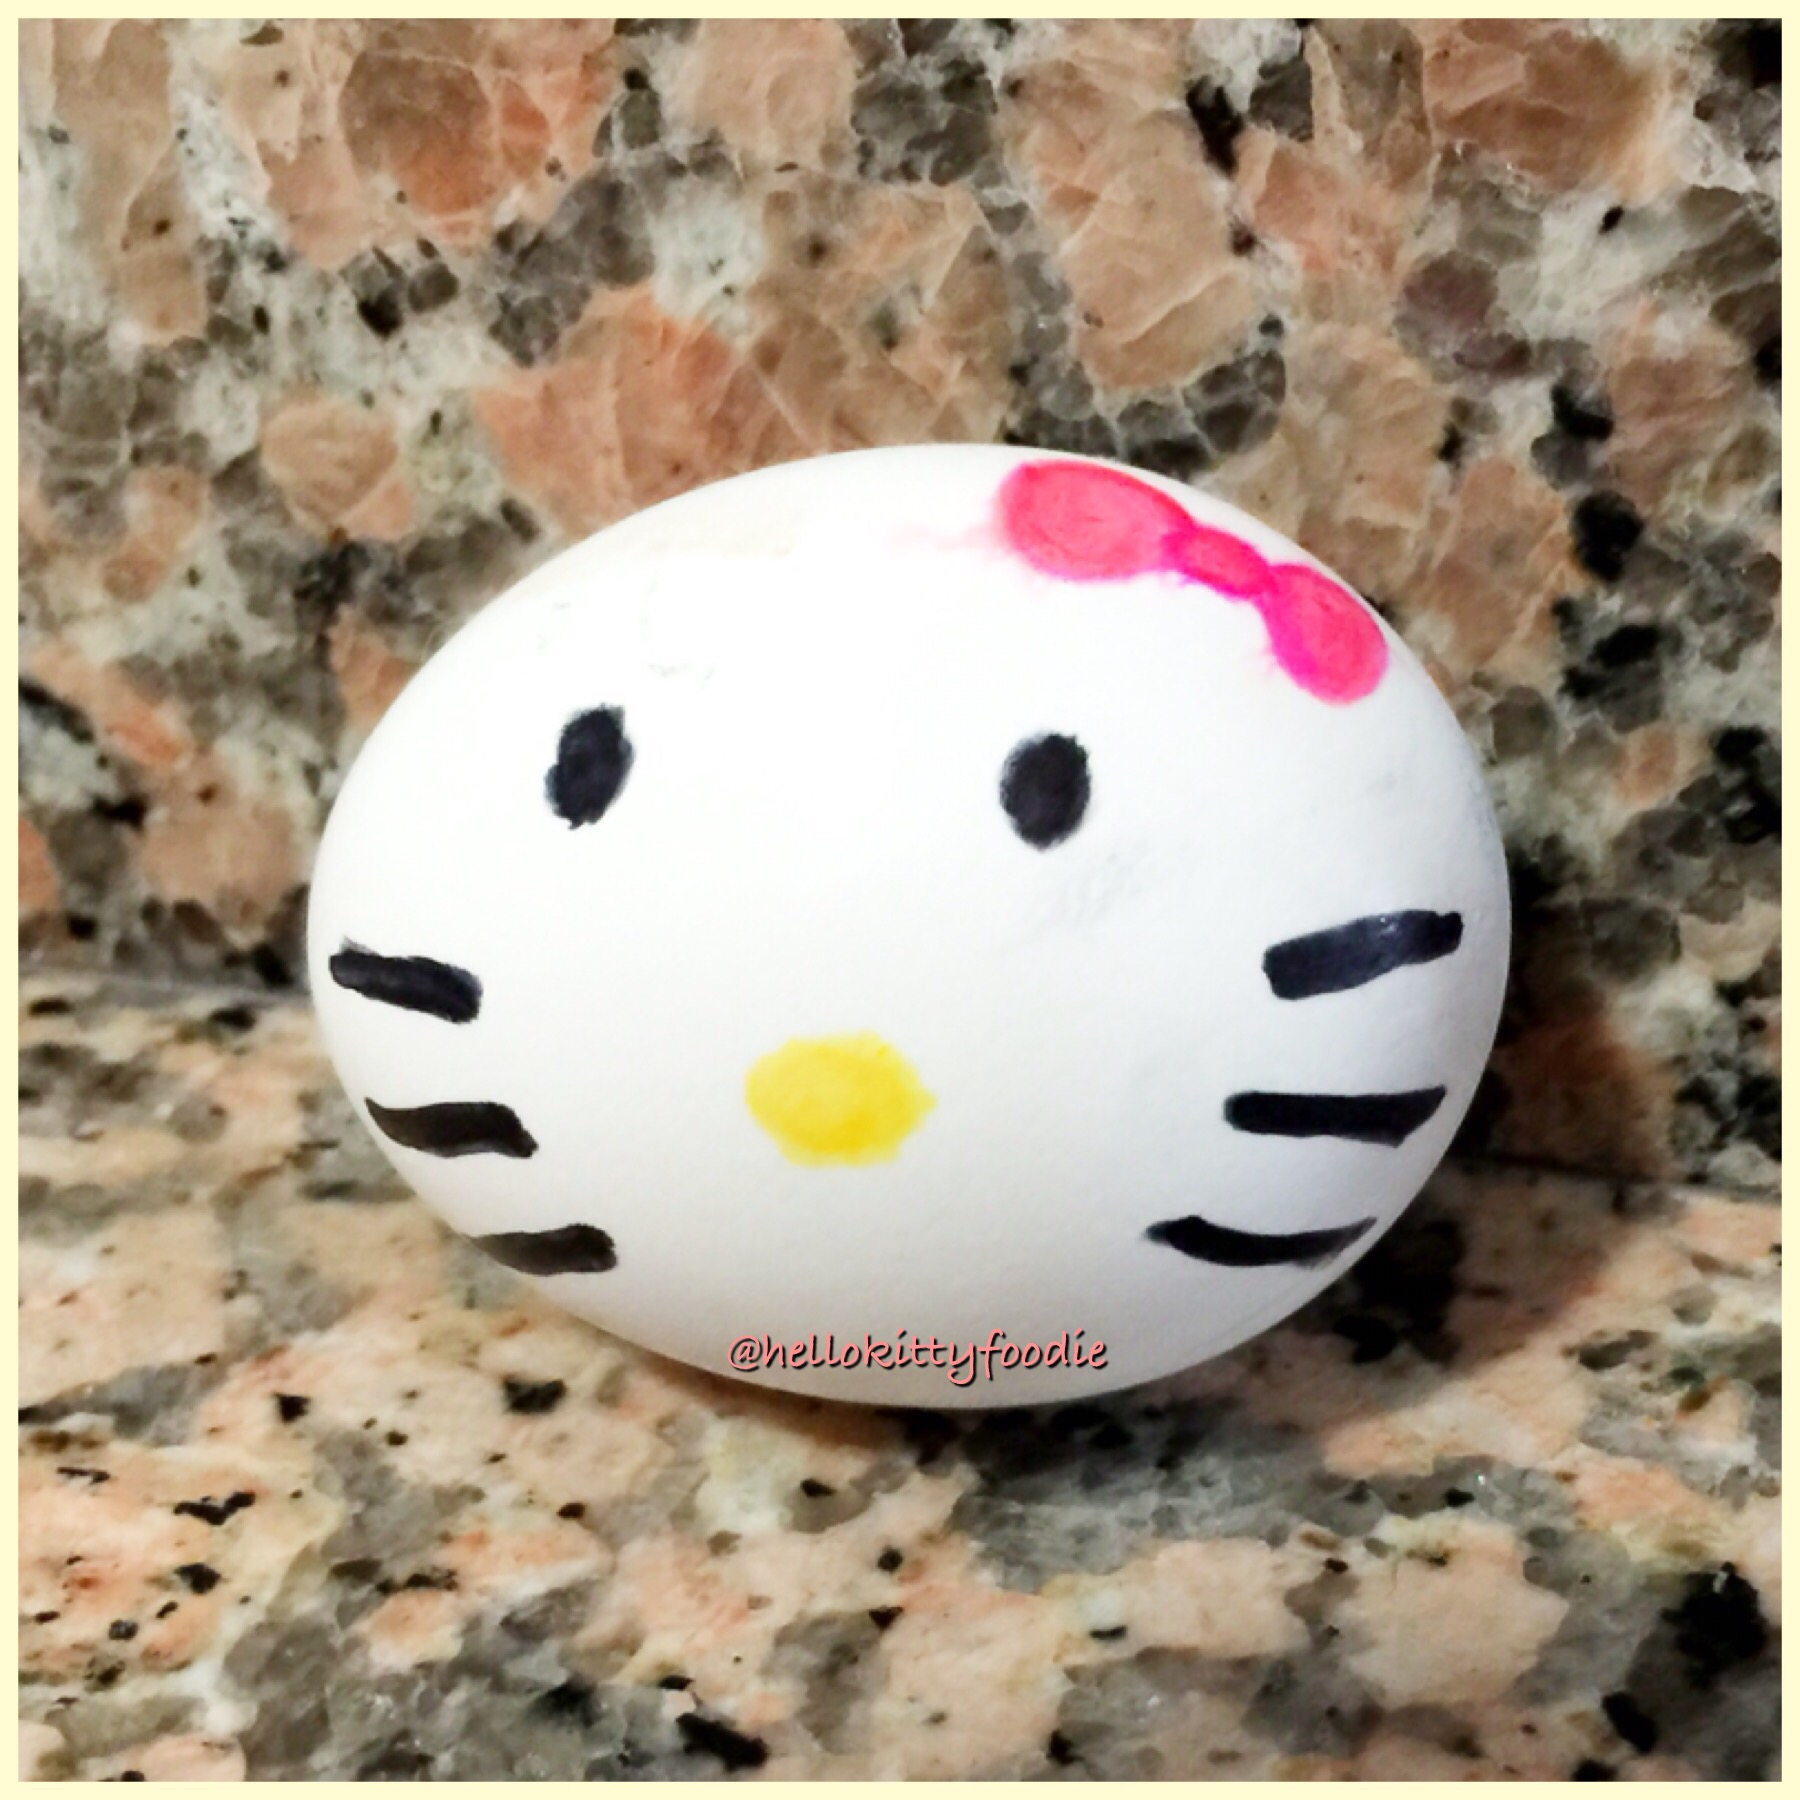 Chinese food hello kitty foodie - Cuisine hello kitty ecoiffier ...